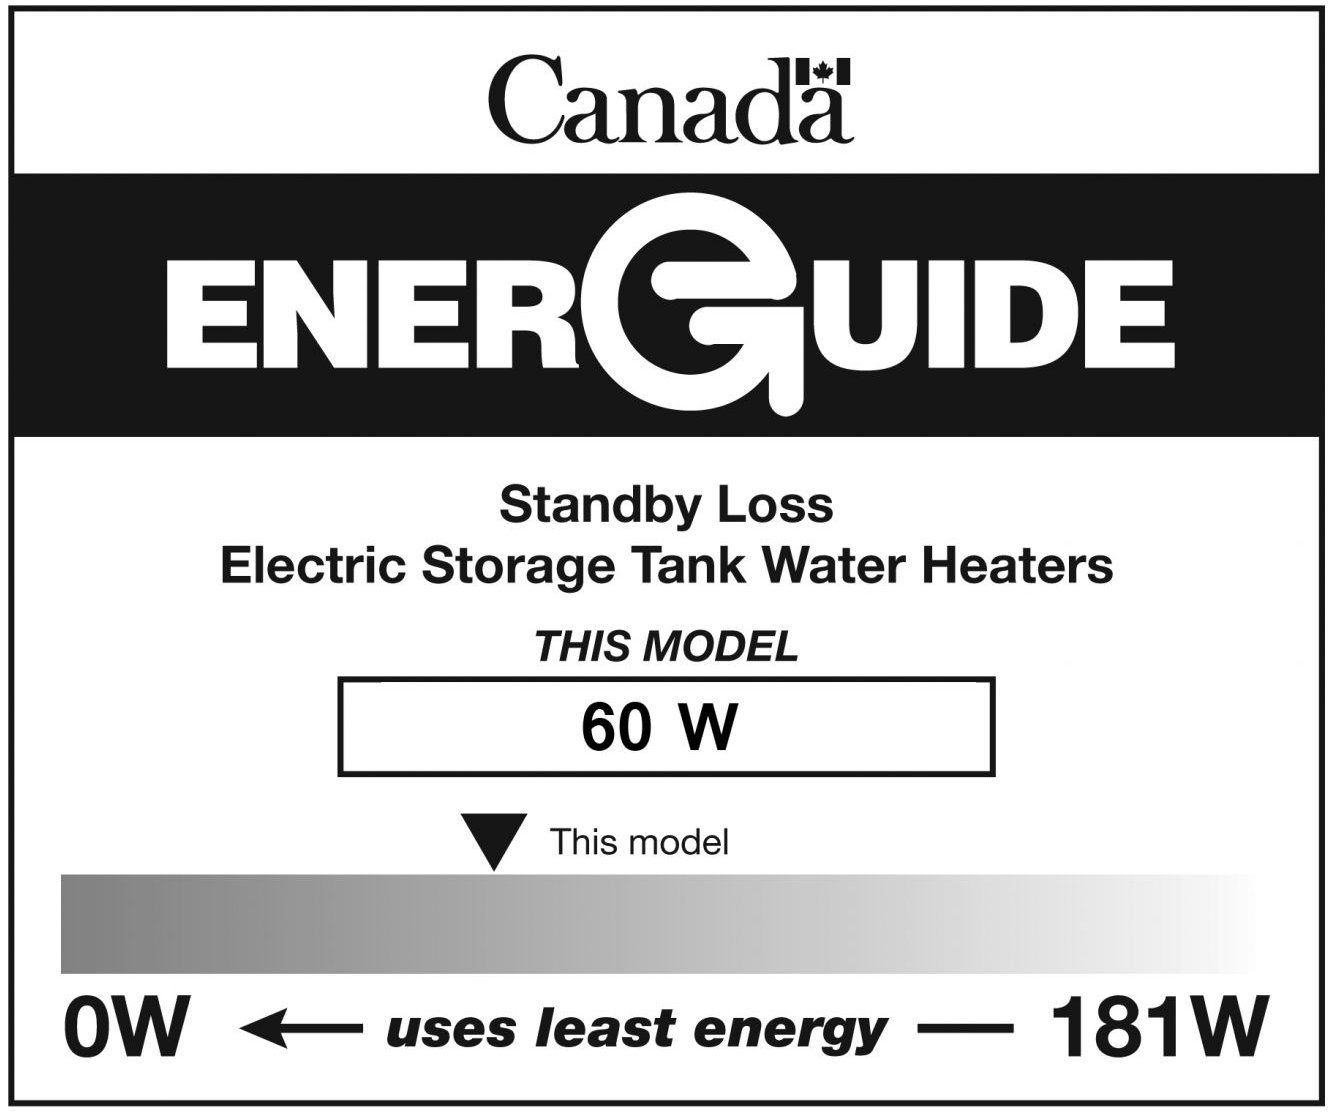 Storage tank water heatersenerguide natural resources canada energuide label for an electric storage tank water heater biocorpaavc